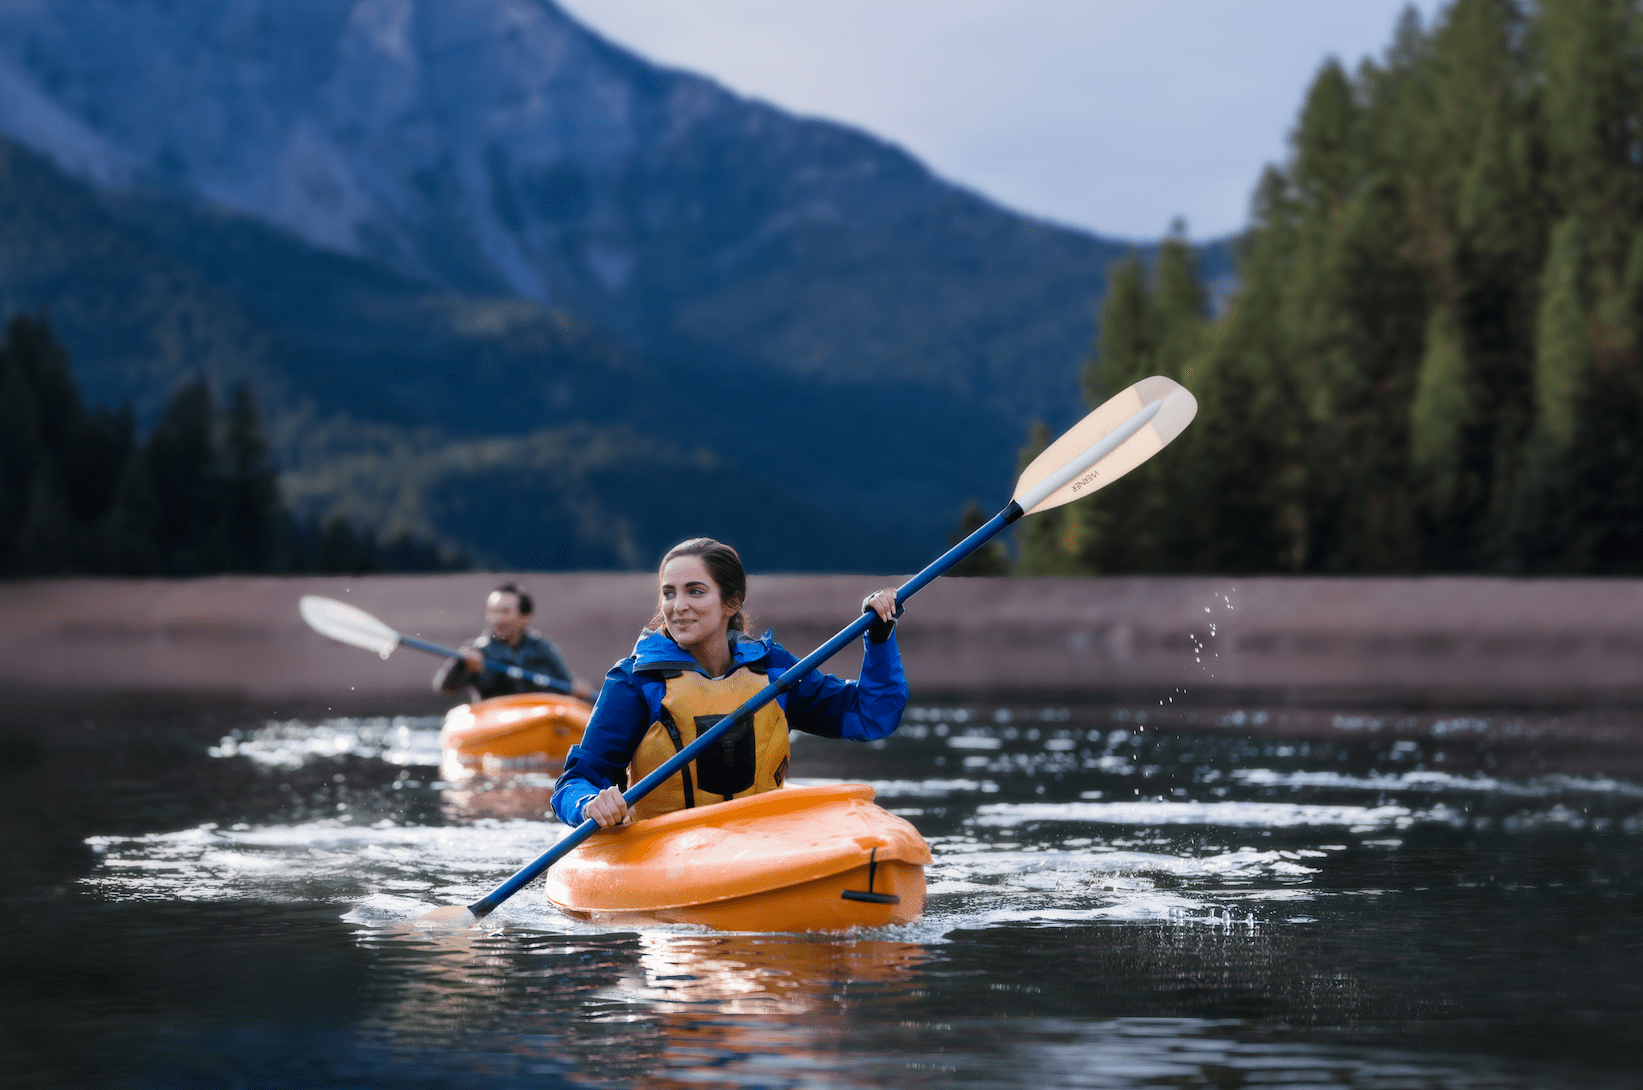 This American First Credit Union commercial features individuals reaching their goals through graduation, adventures such as kayaking and camping.